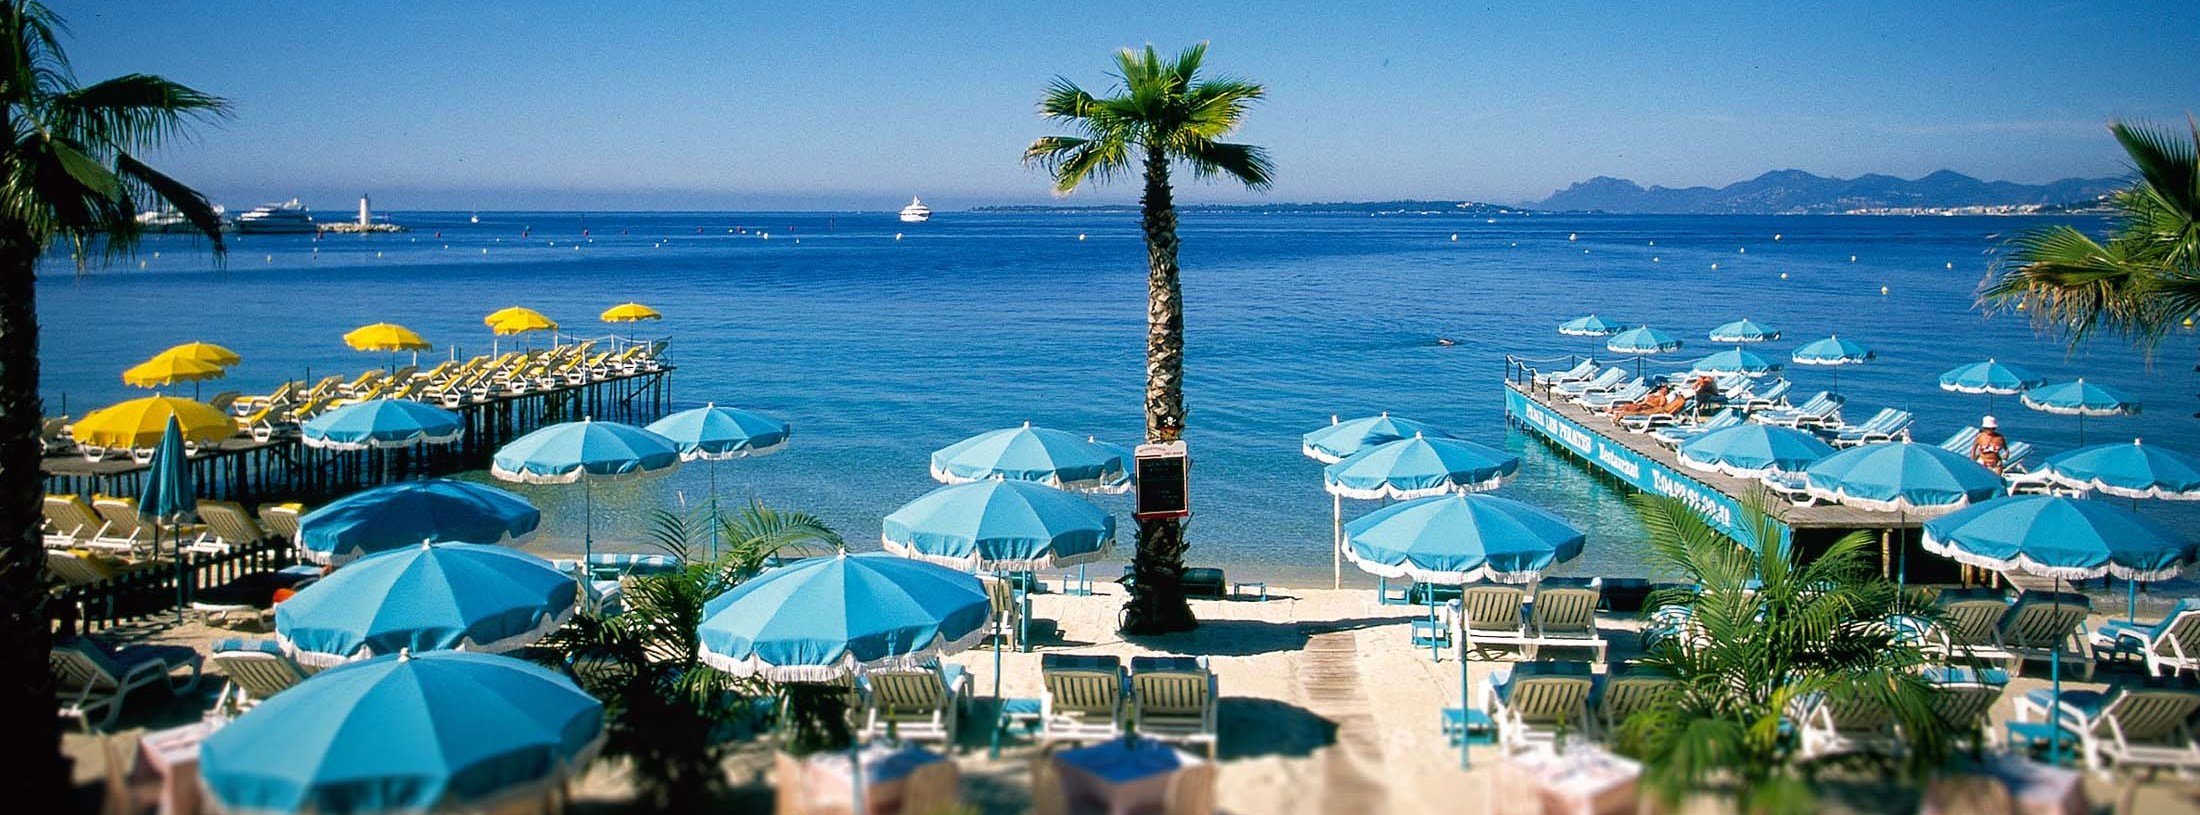 Antibes juan les pins   hotel and accommodation for your holiday ...